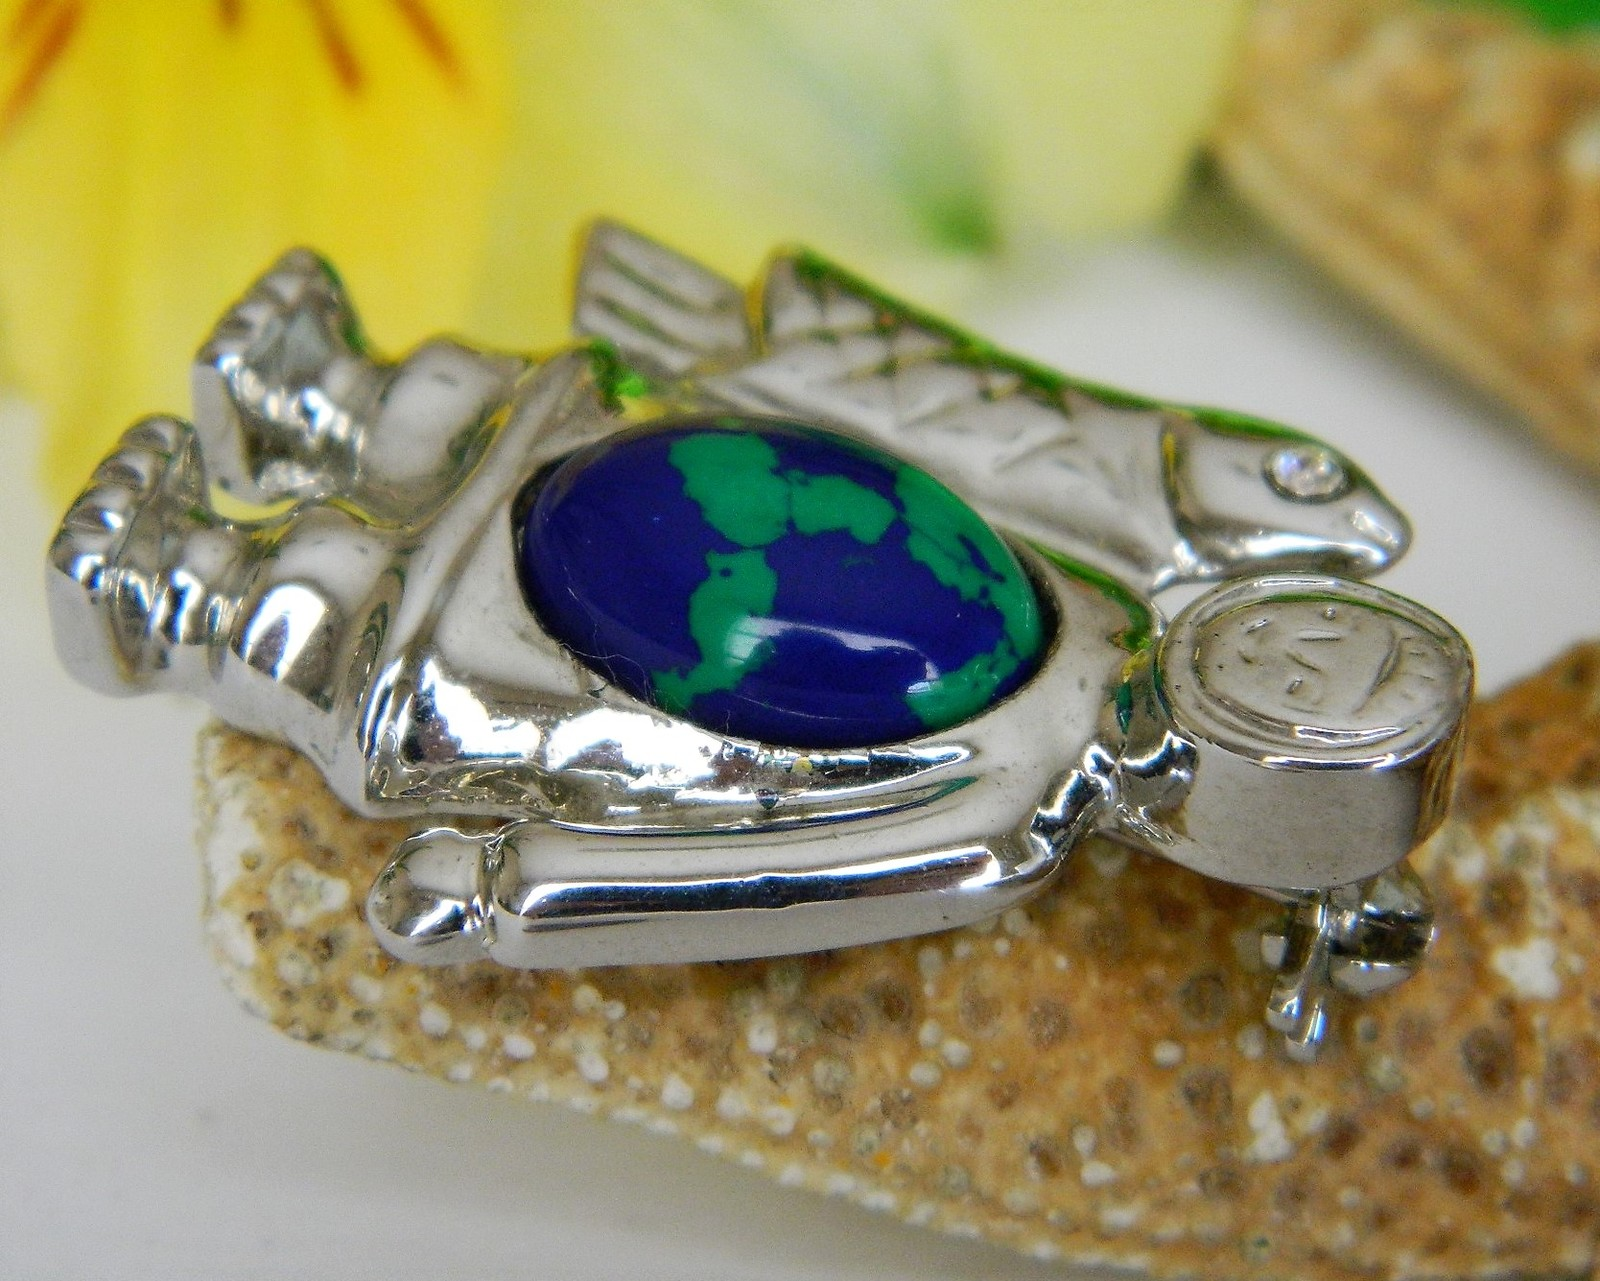 Vintage Eskimo Inuit Fish Jelly Belly Brooch Pin Silver Tone Cabochon image 11